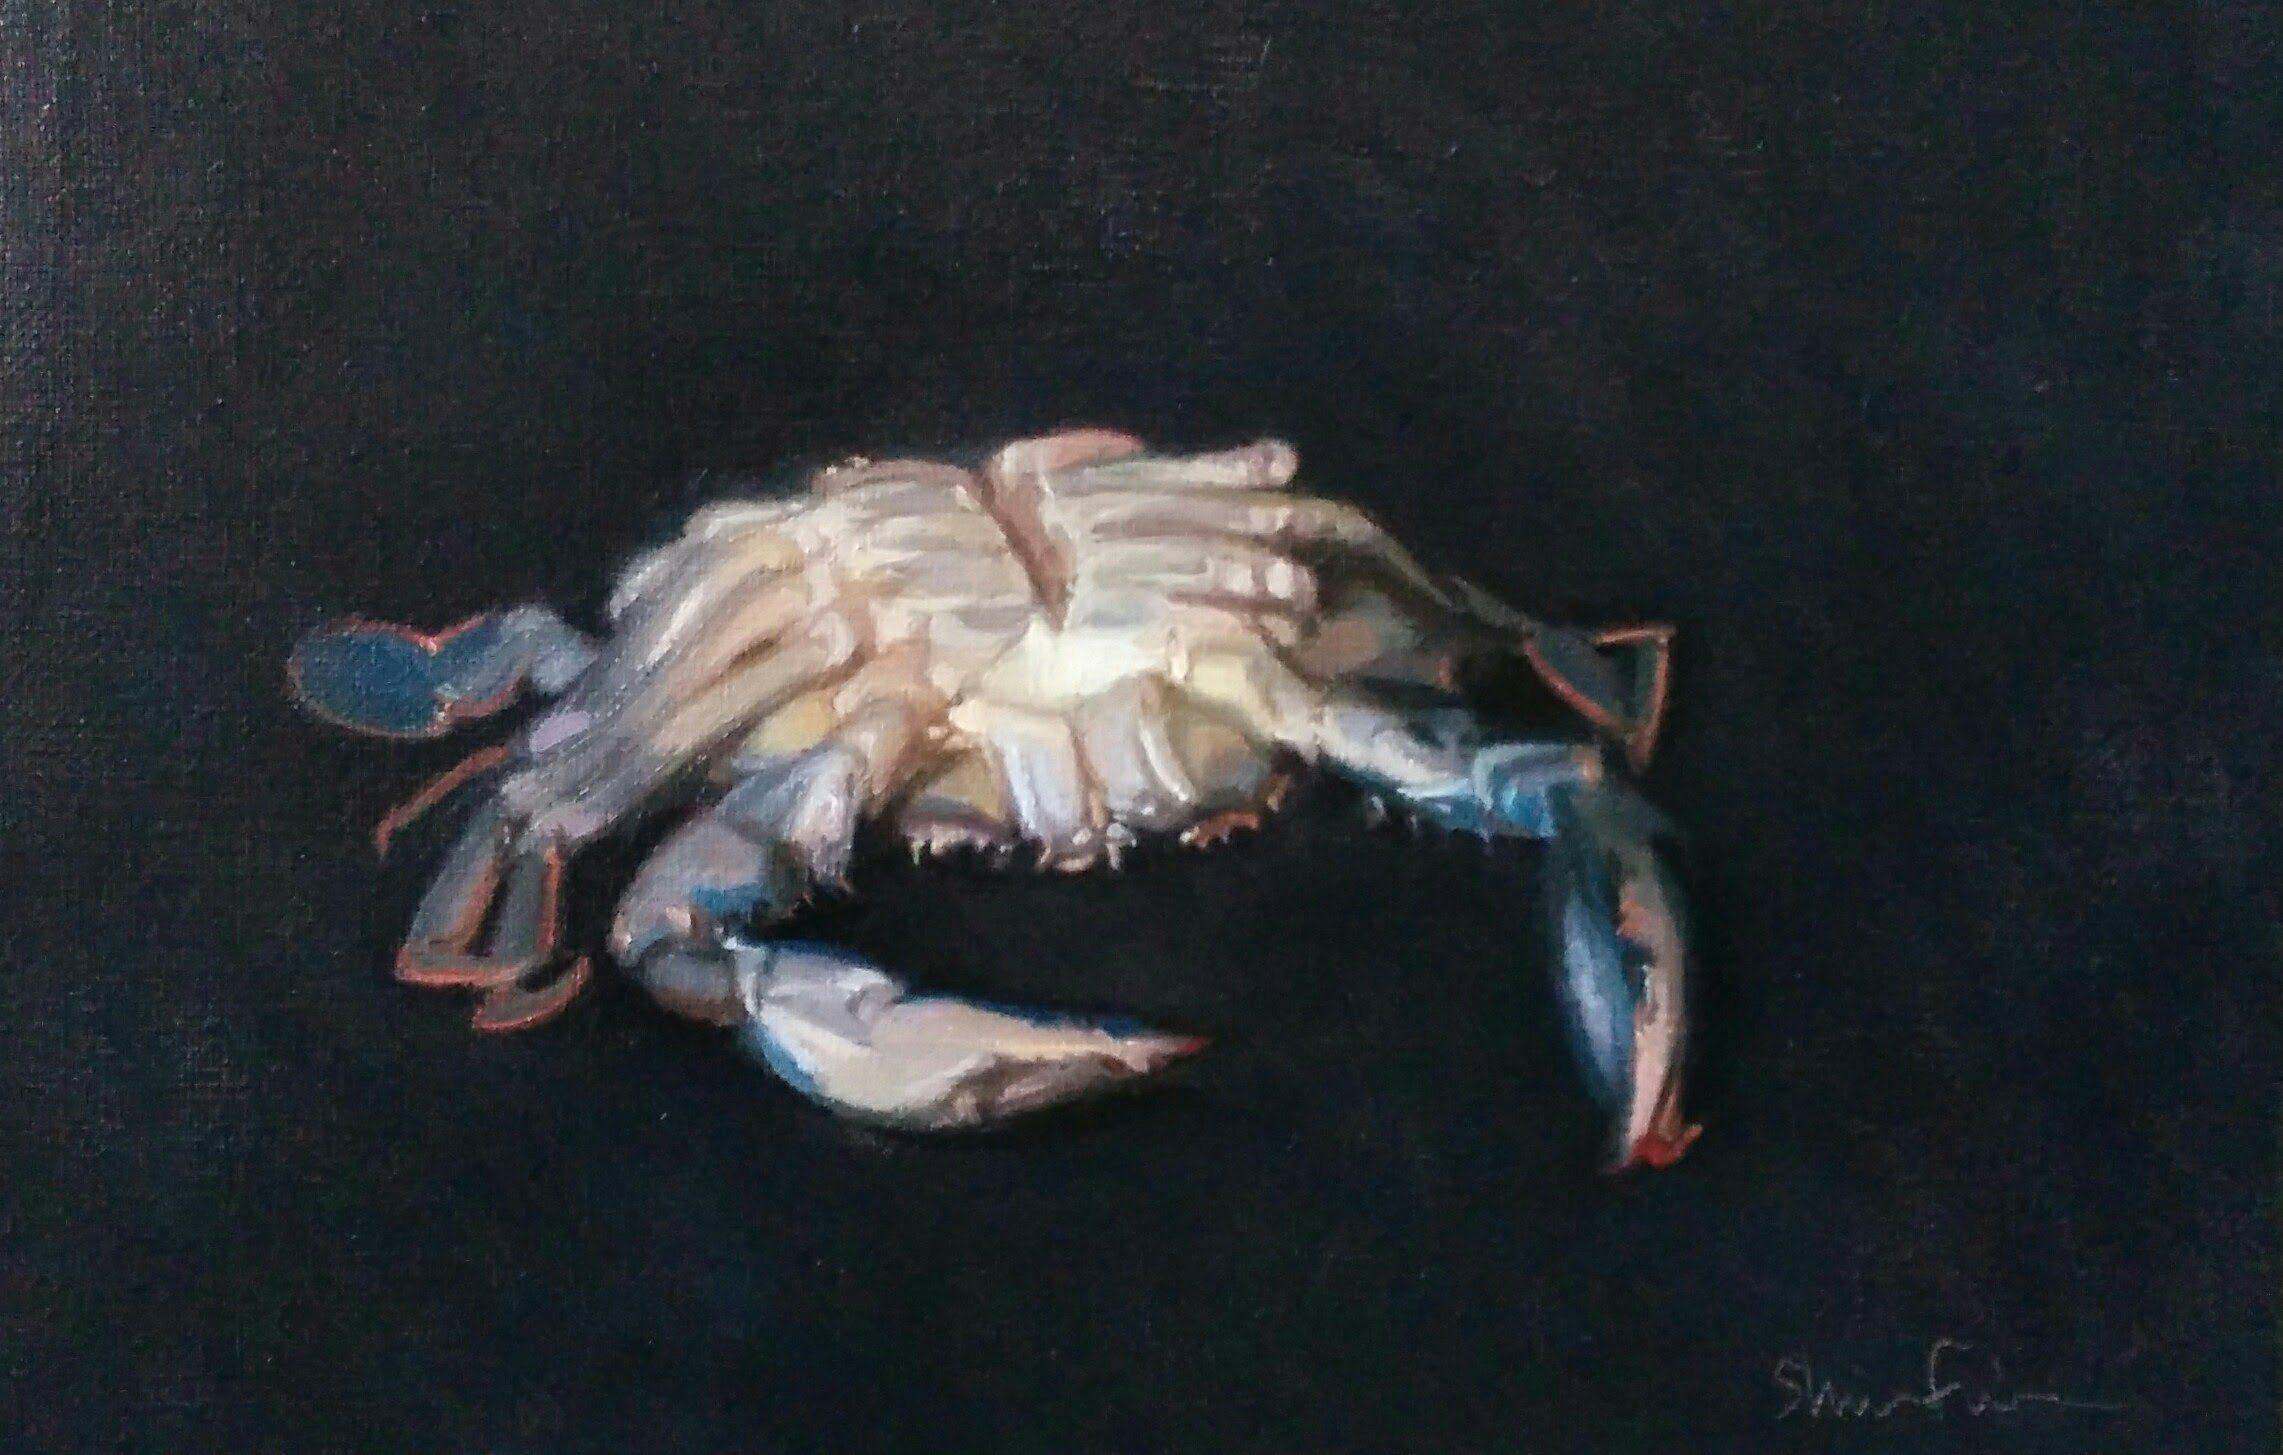 Variation No. 2 on CRAB